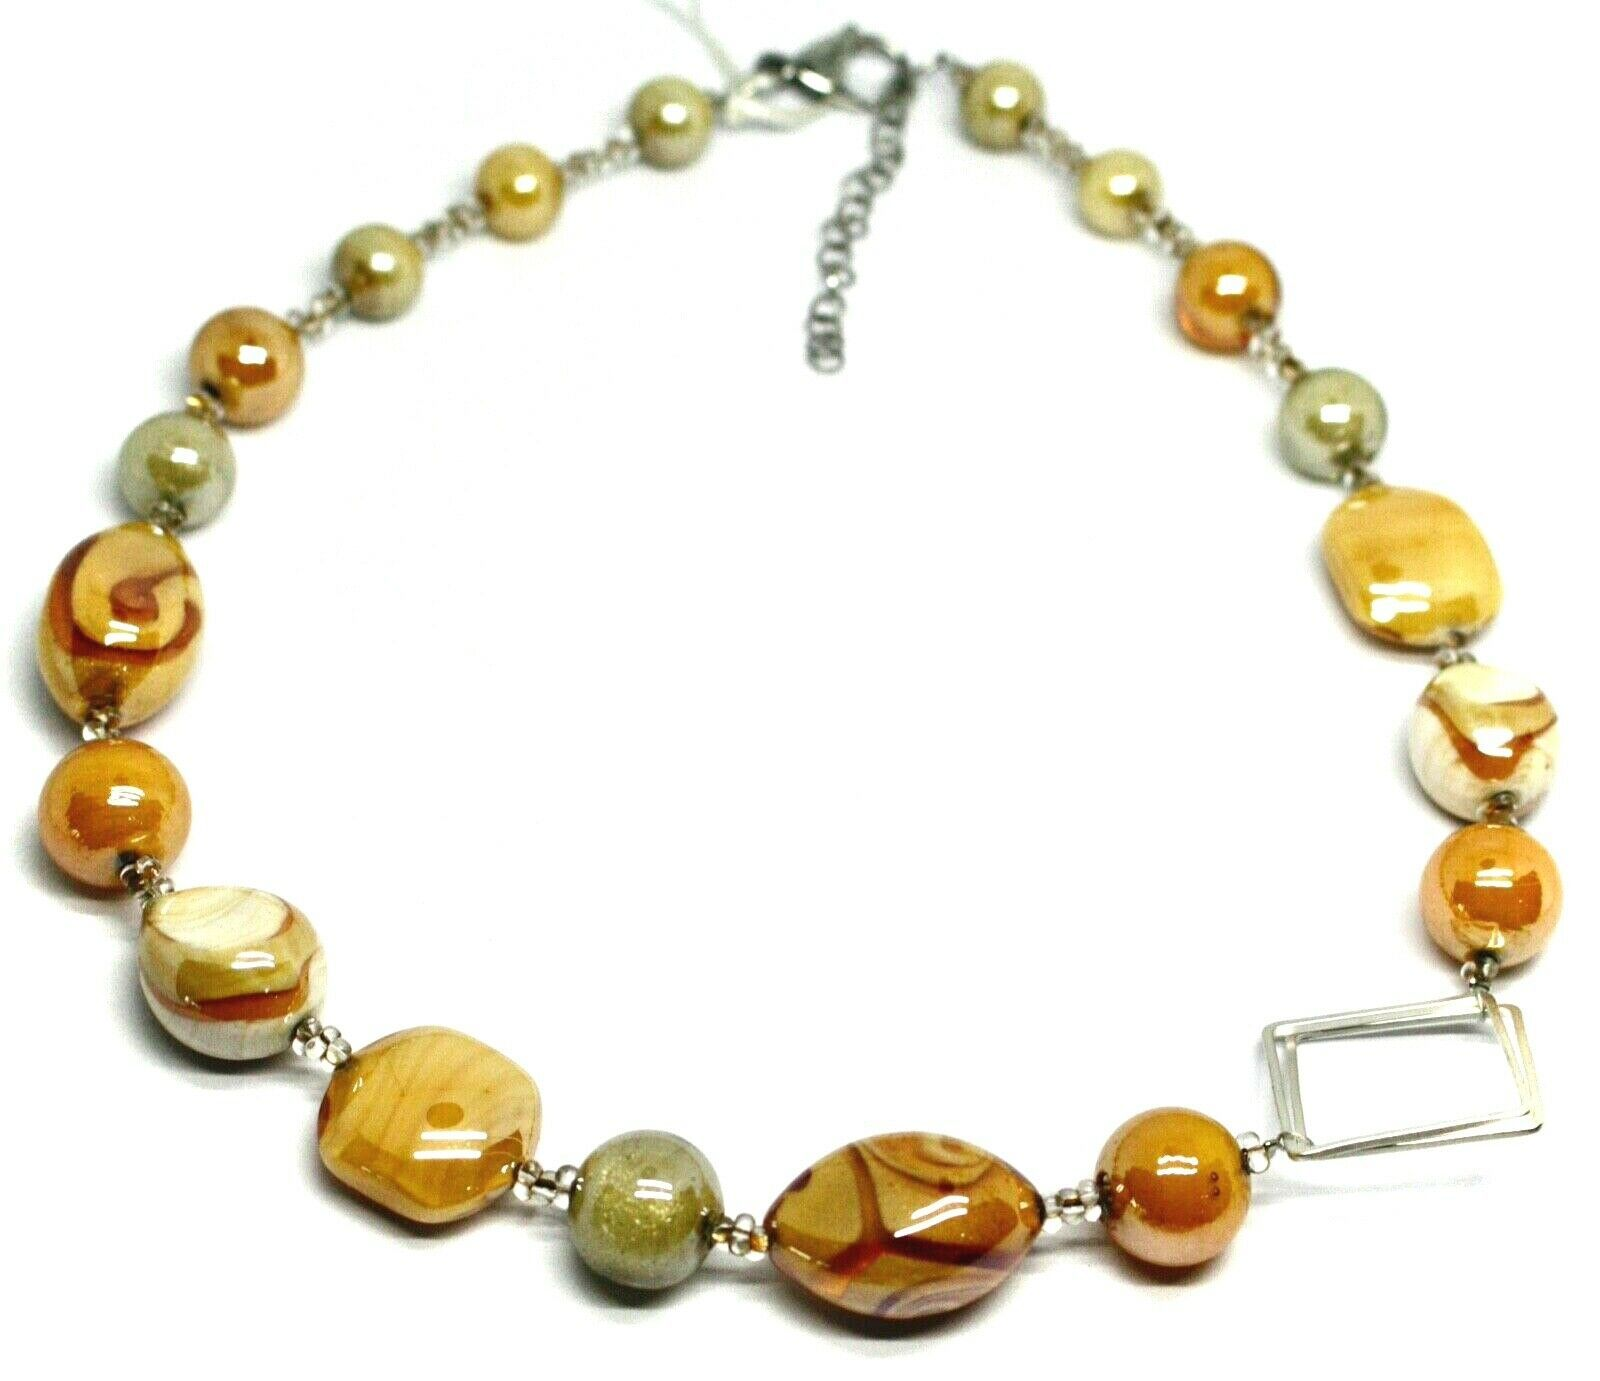 NECKLACE ORANGE WHITE ROUNDED DROP SPHERE, EXAGON MURANO GLASS SQUARE ITALY MADE